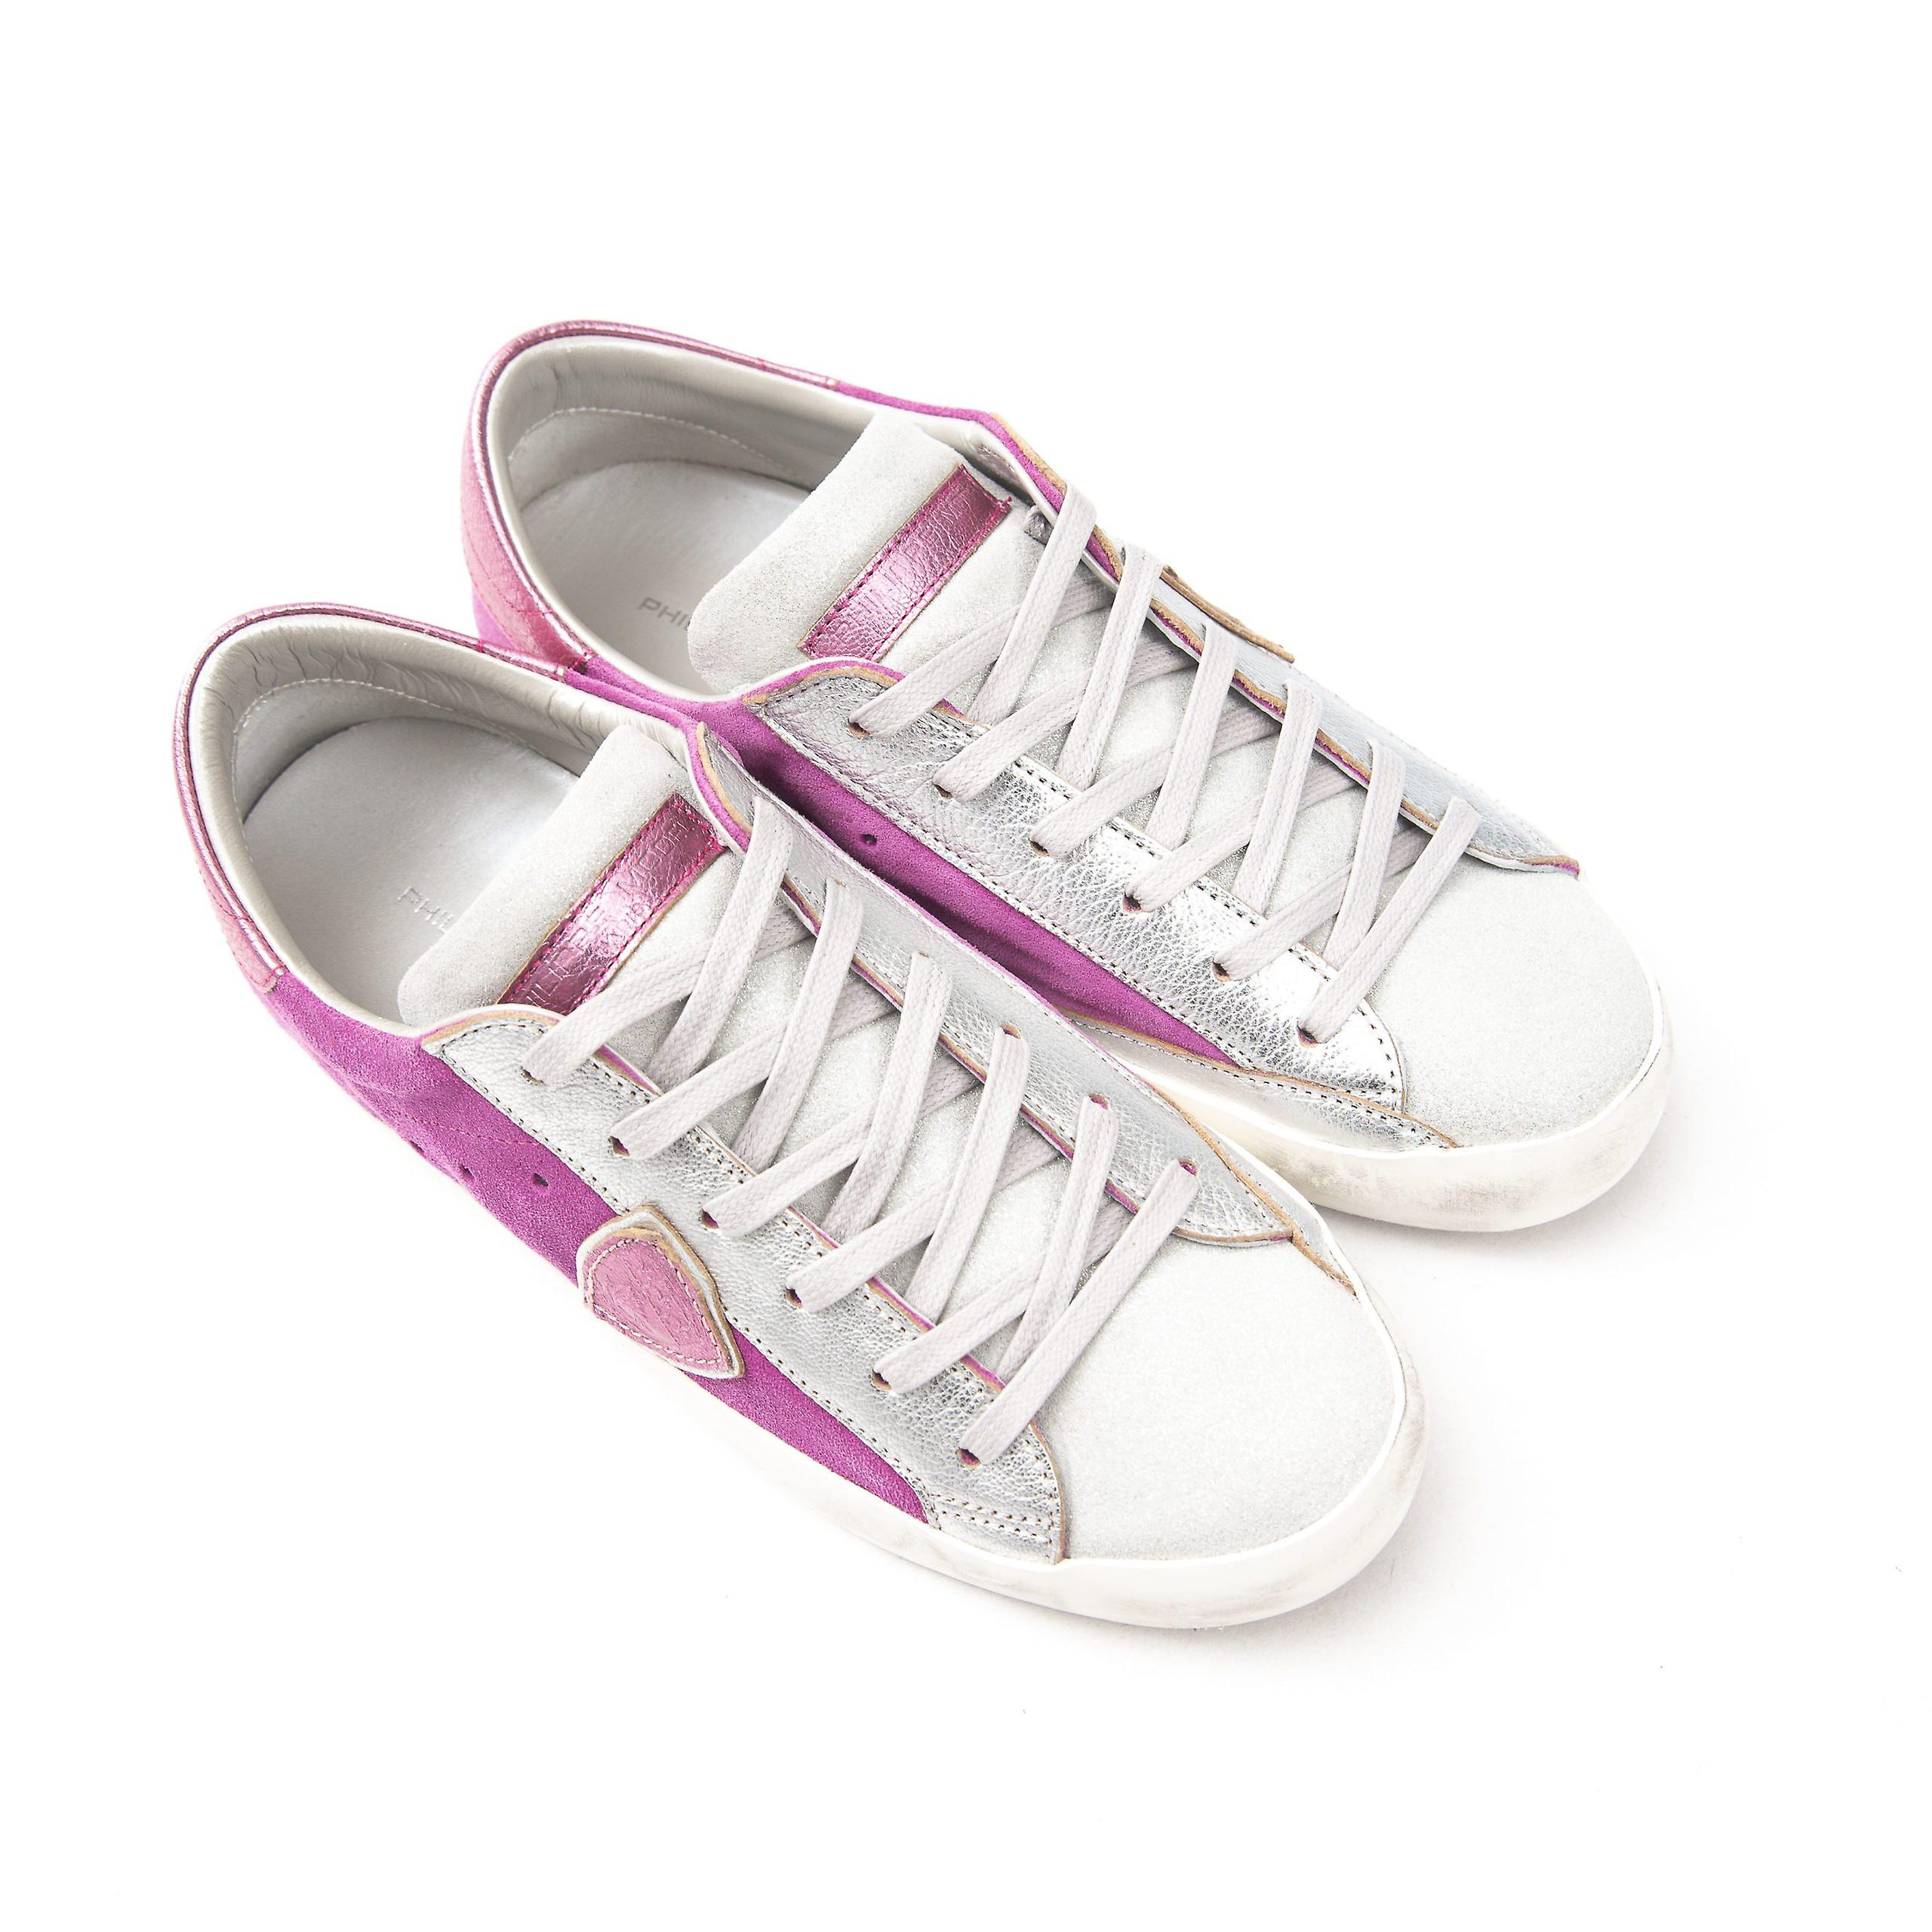 Philippe Model Fuchsia Suede Leather Sneakers